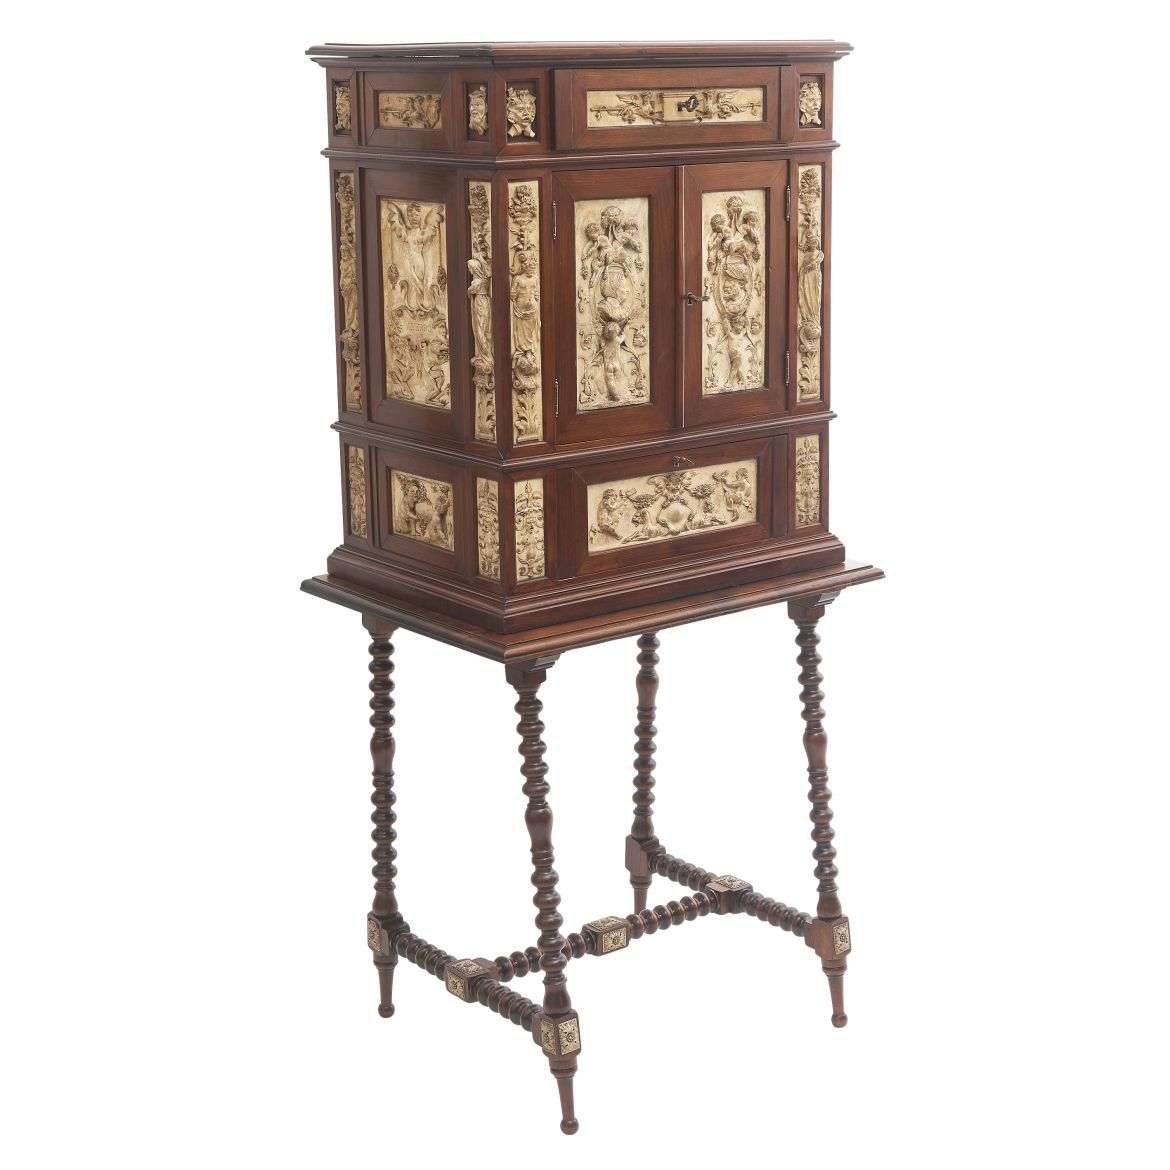 Spanish Collector's Cabinet On Stand With Carved Stucco Panels